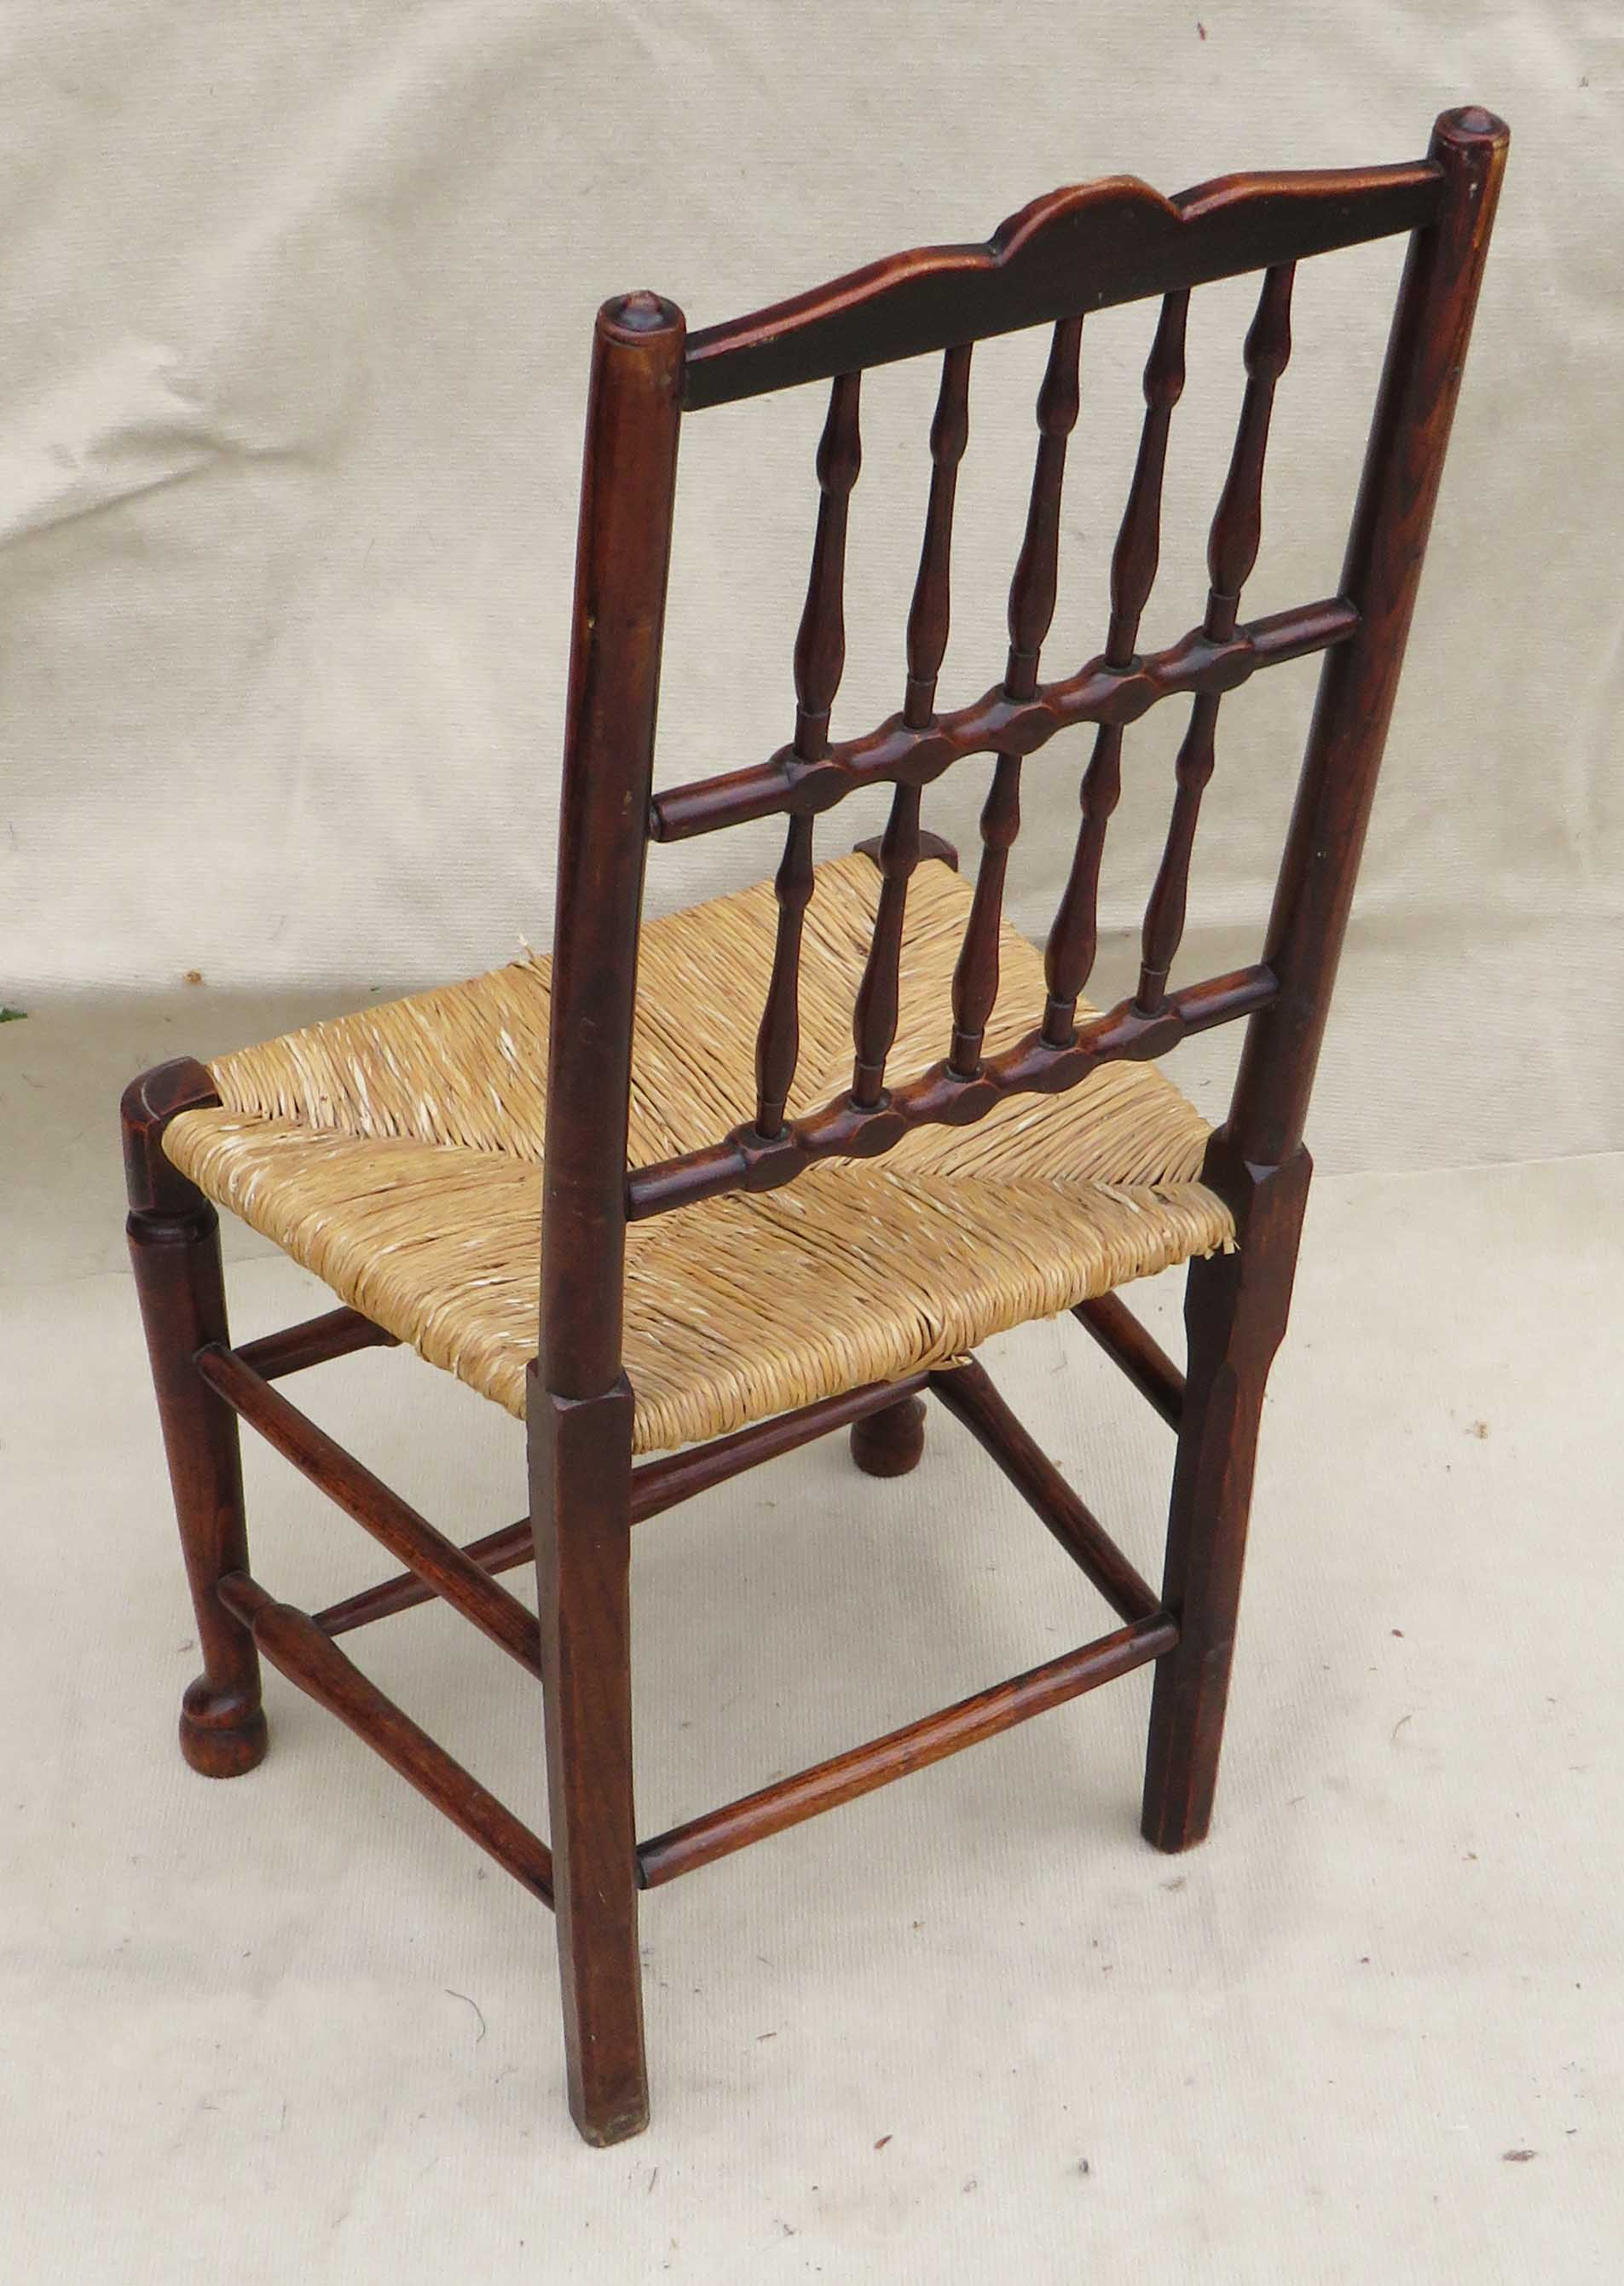 Matched Set Of 8 Spindle Back Dining Chairs, Early 19th Century - Image 12 of 12